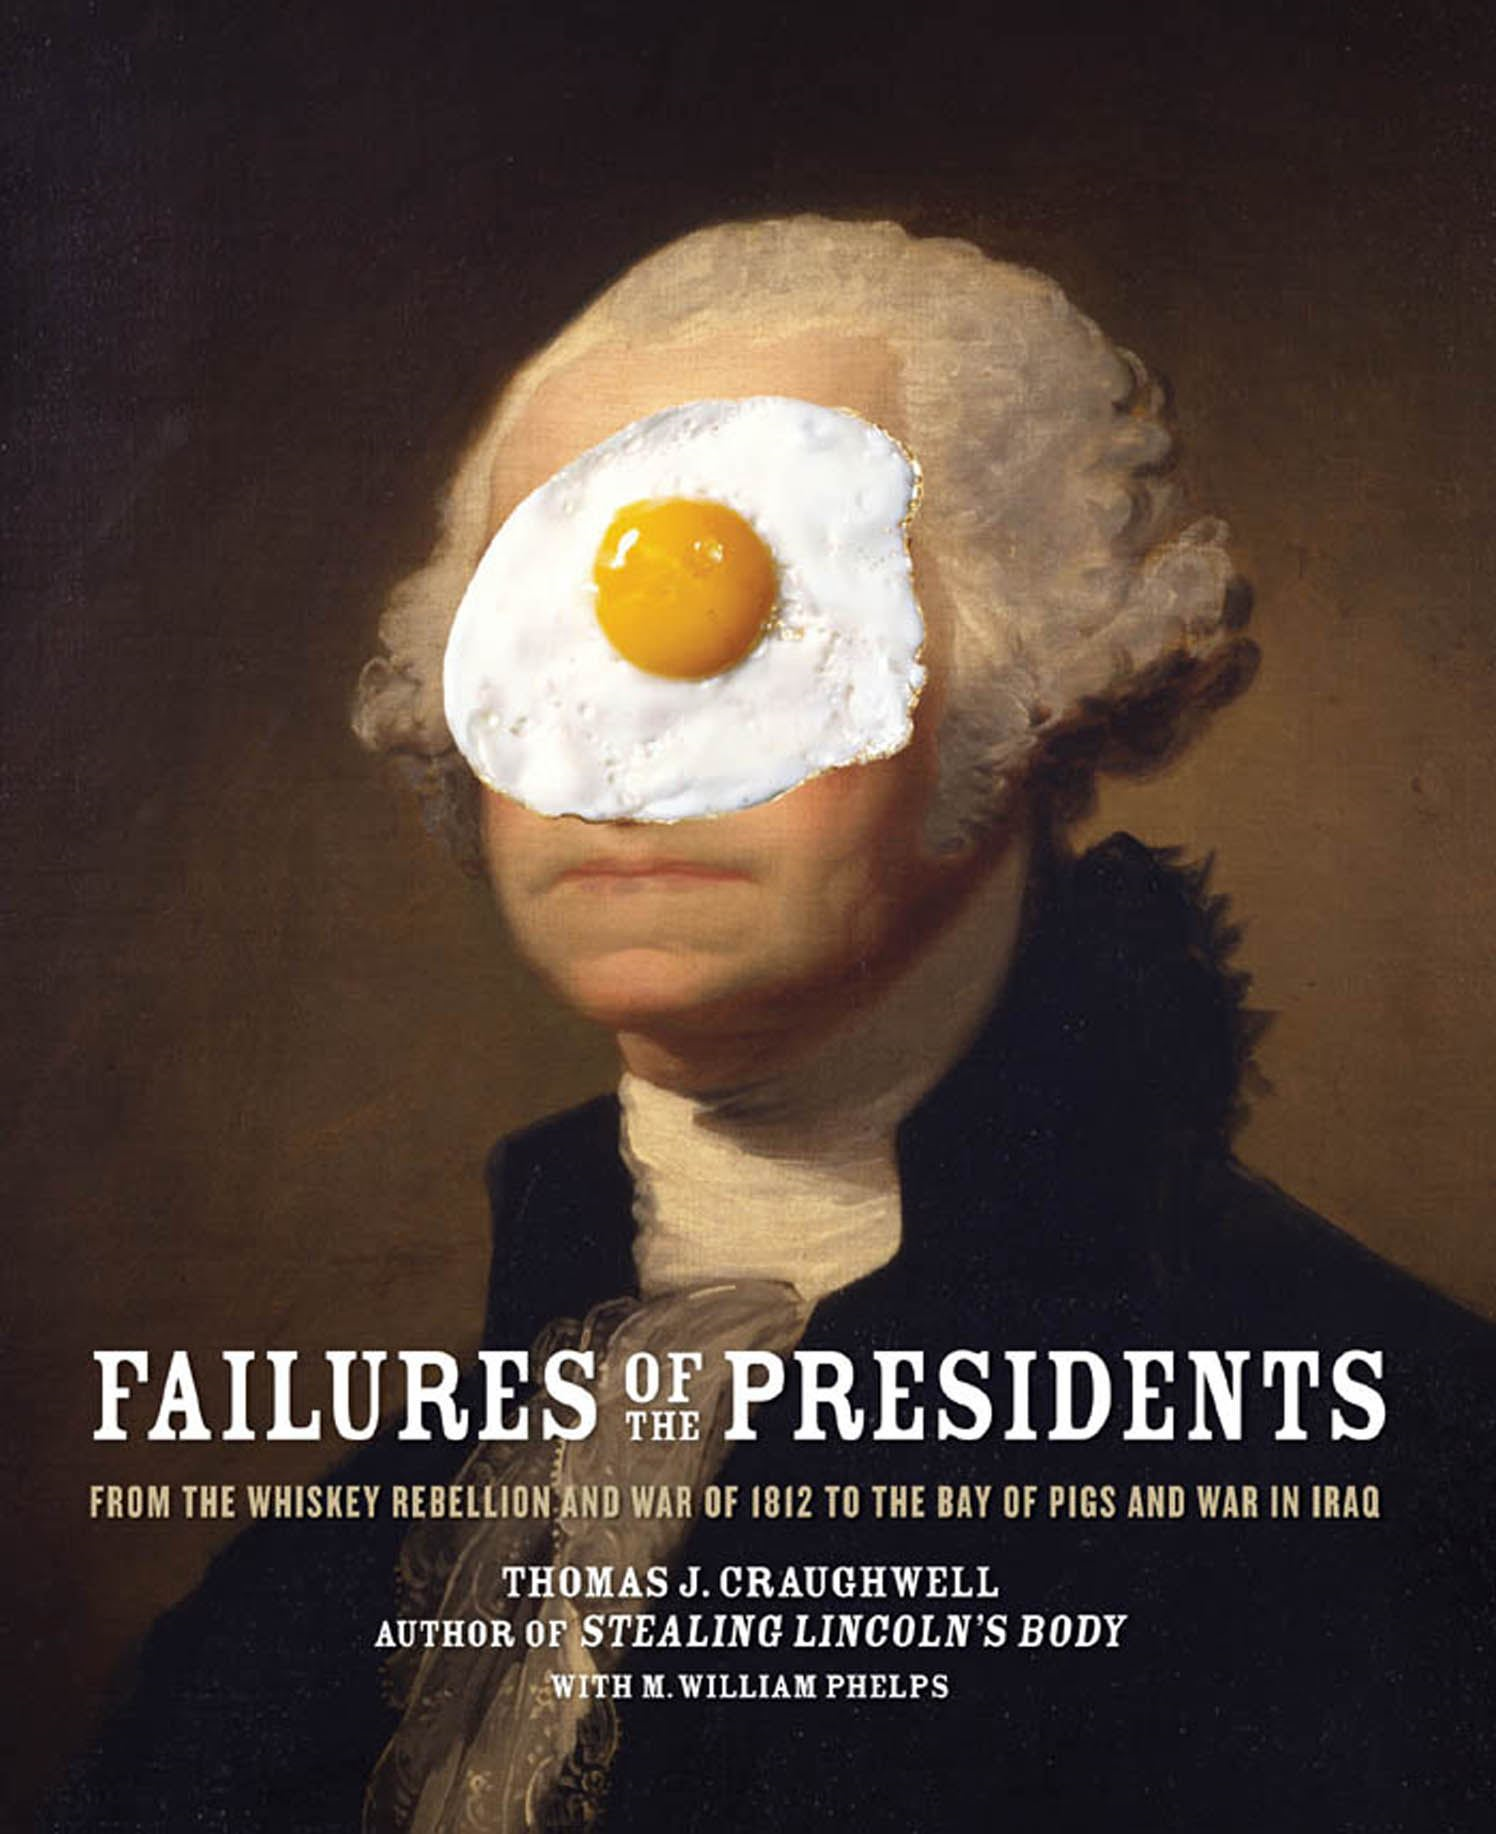 Failures of the Presidents: From the Whiskey Rebellion and War of 1812 to the Bay of Pigs and War in Iraq By: Thomas J. Craughwell,M. William Phelps